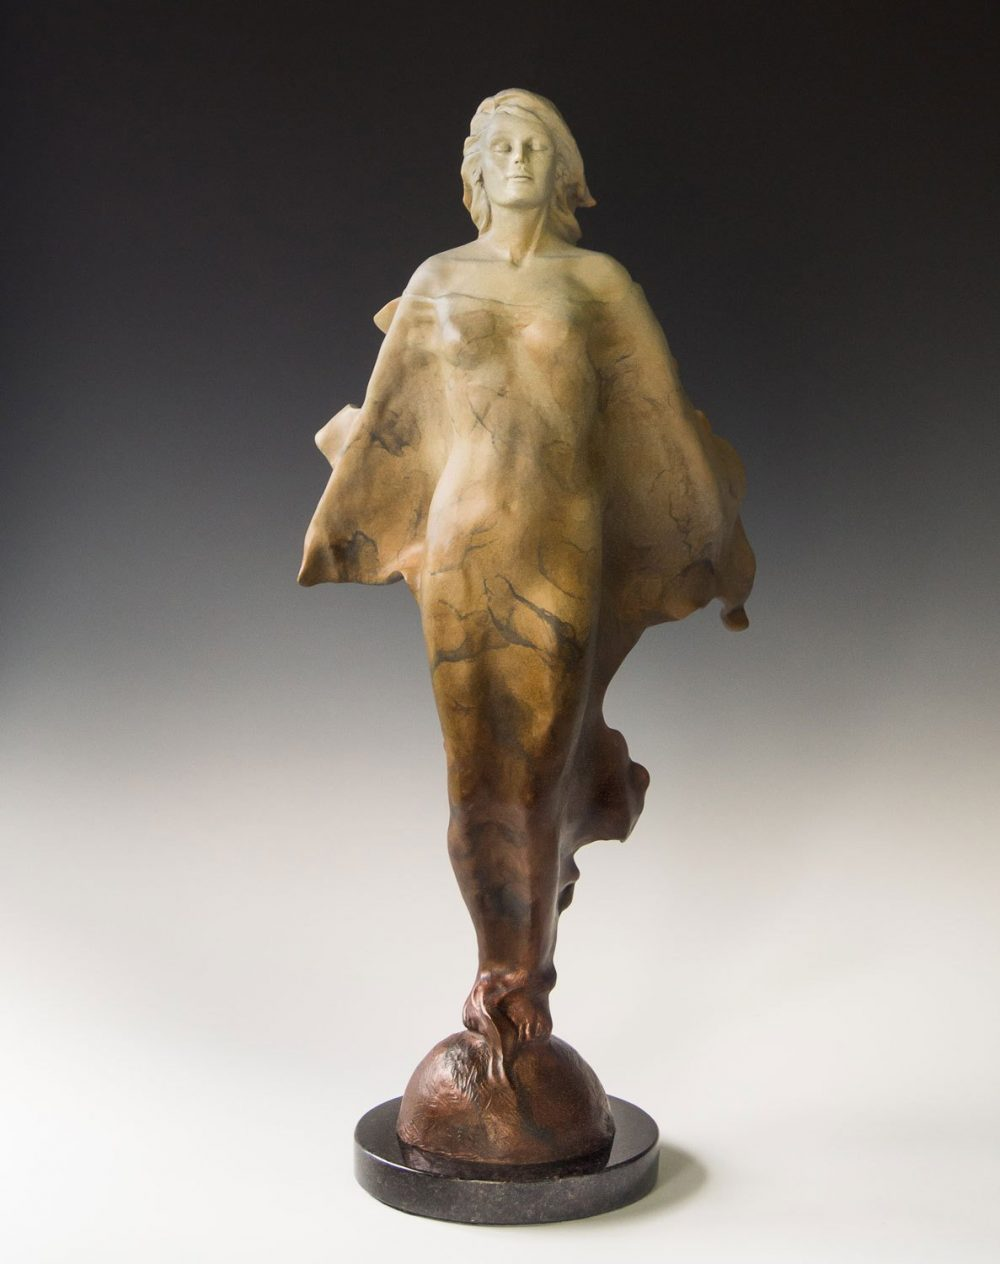 Transcendence | Scy Caroselli | Sculpture-Exposures International Gallery of Fine Art - Sedona AZ